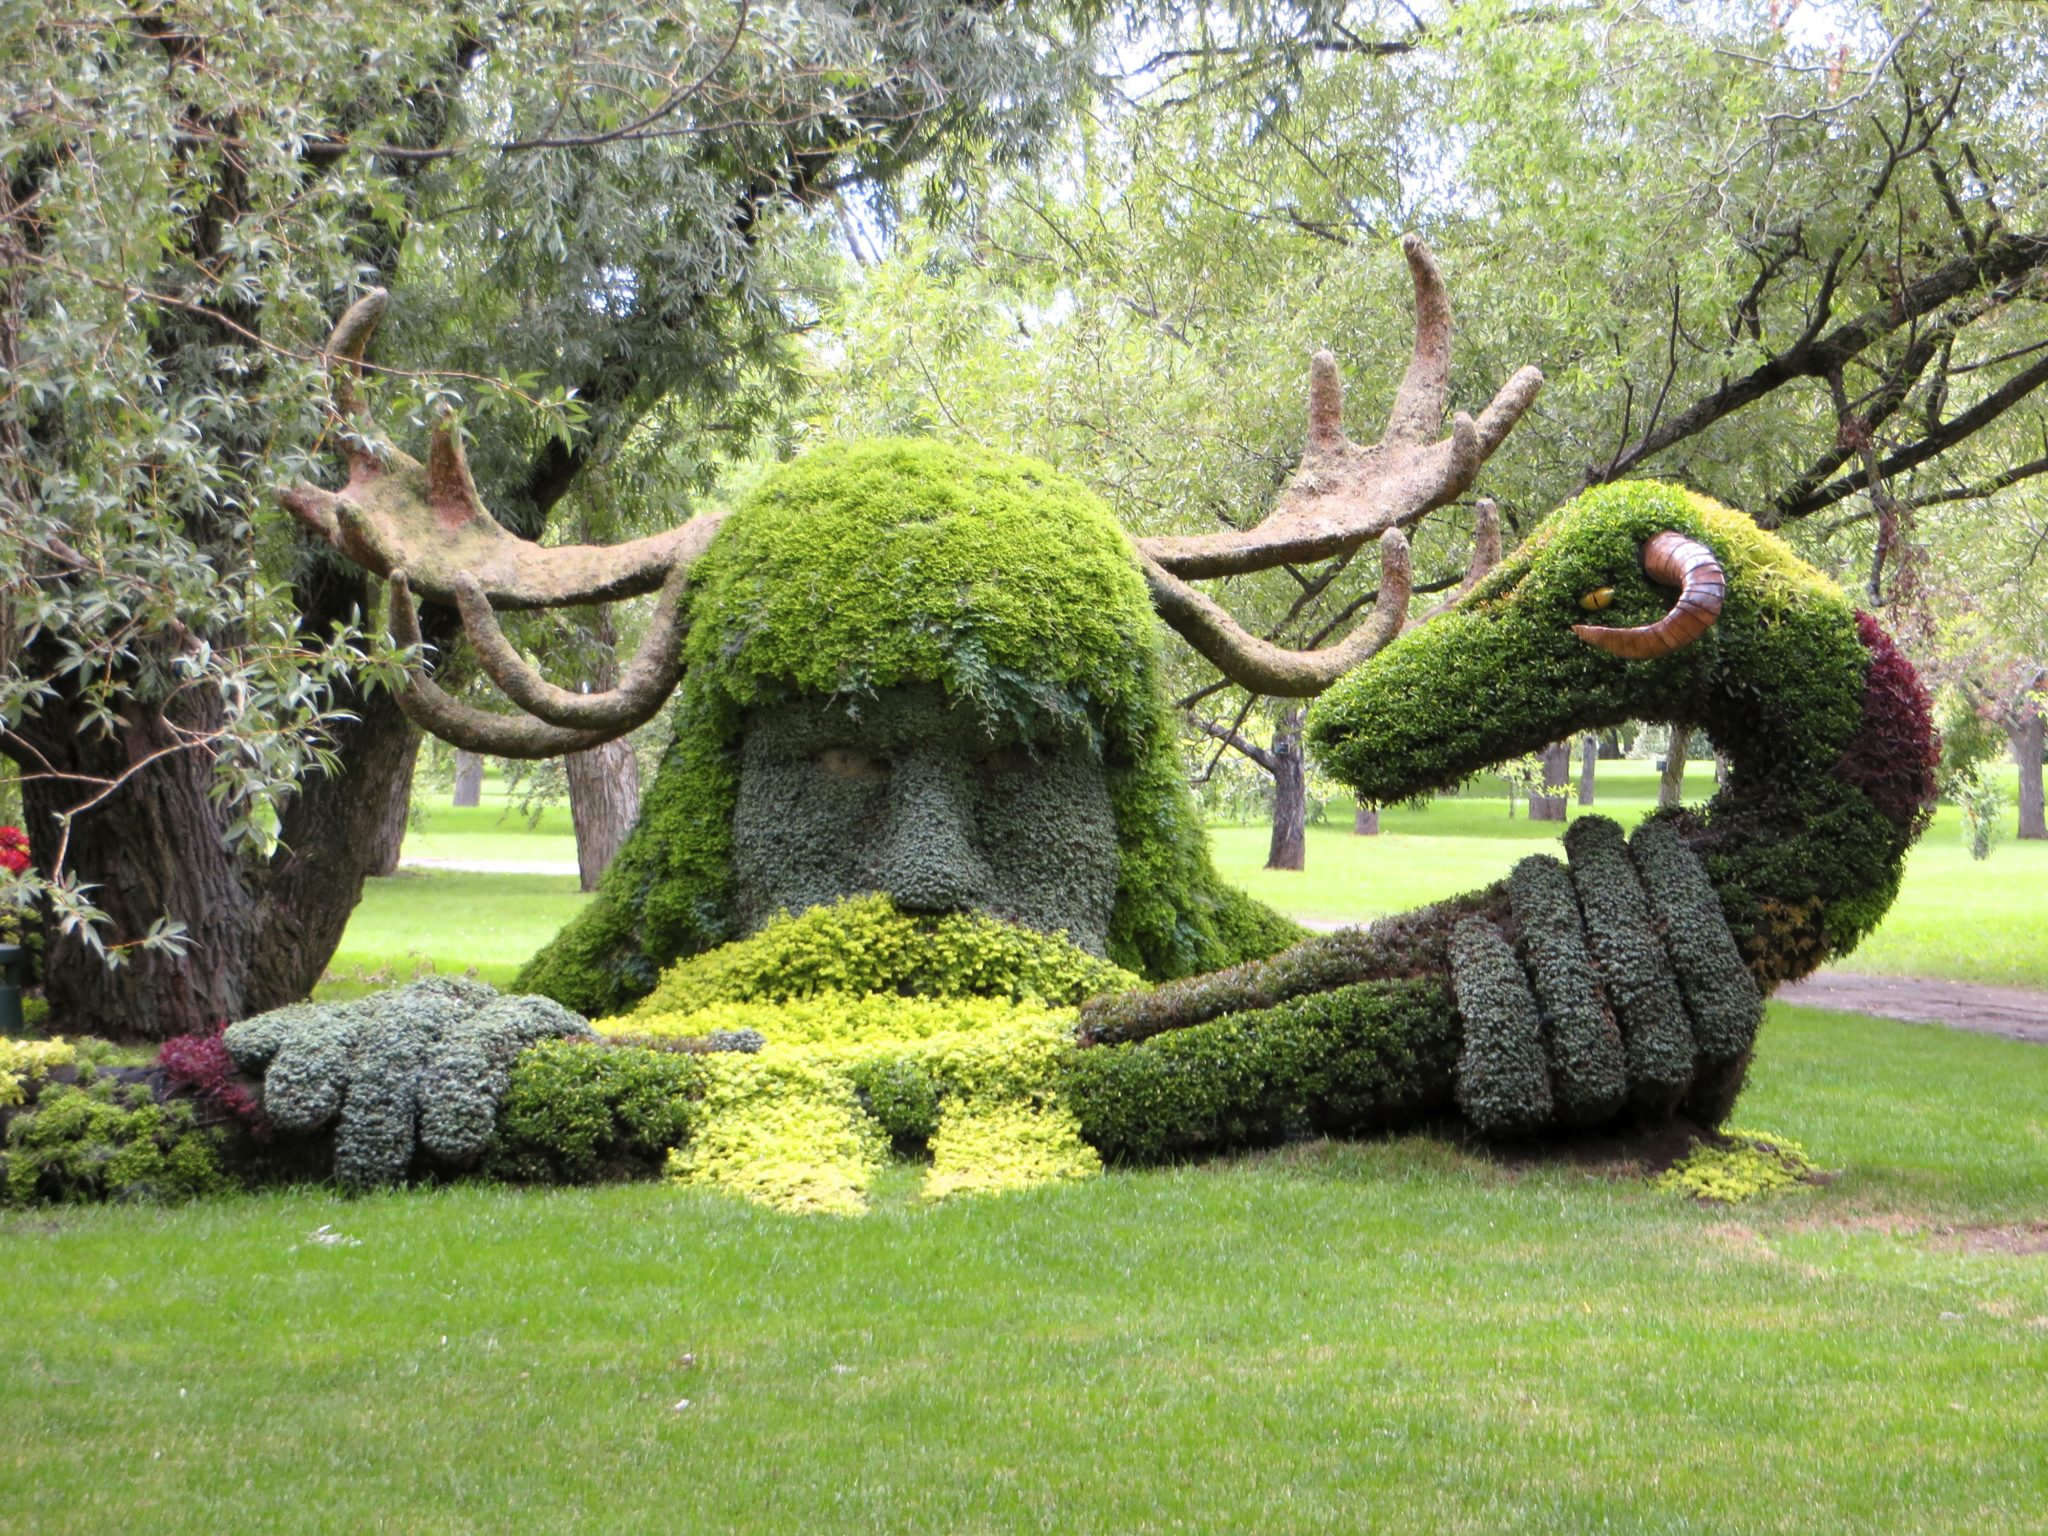 Cernunnos and the Ram-horned Serpent, Spirits of the Forest from Canada.